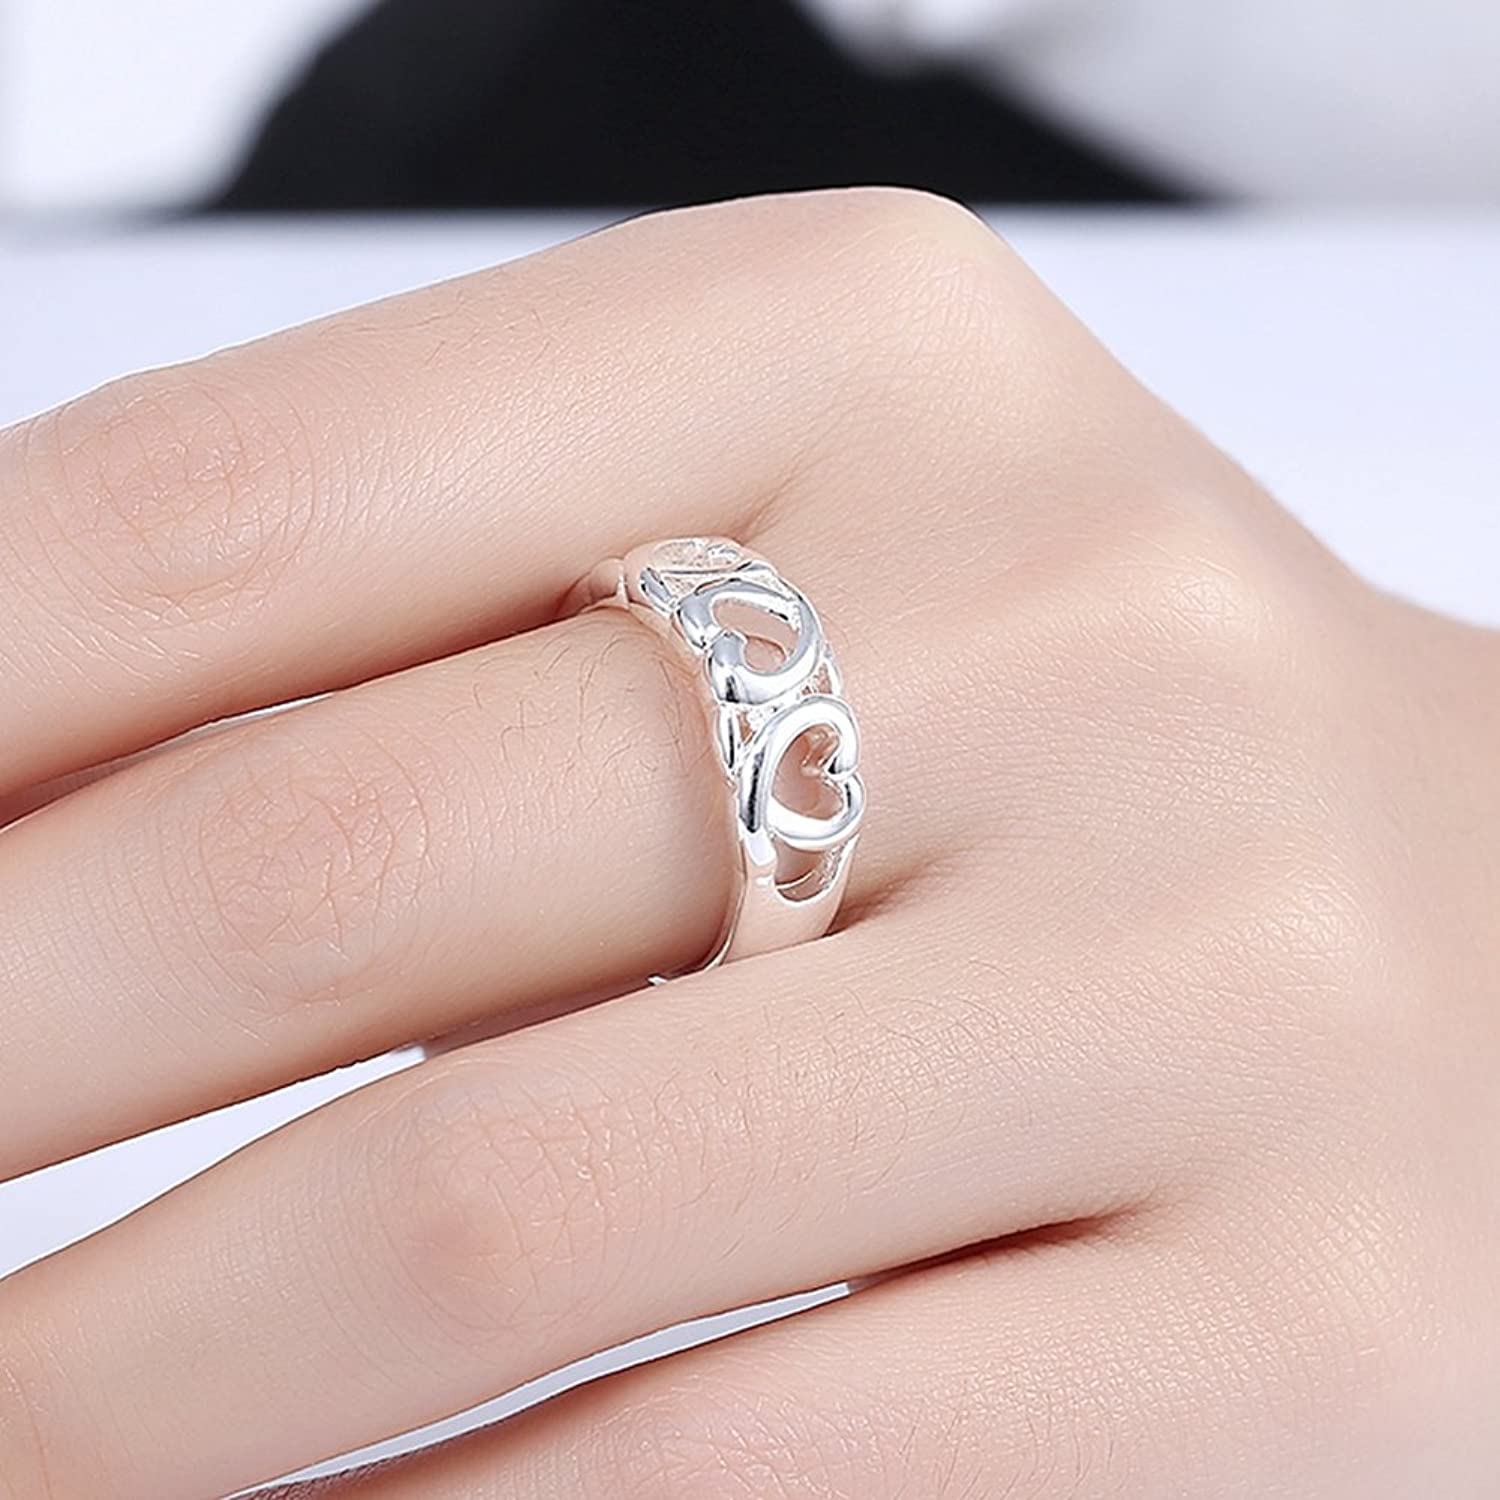 Haokan Women Fashion Jewelry Silver Plated Hollow Heart-shaped Party ...